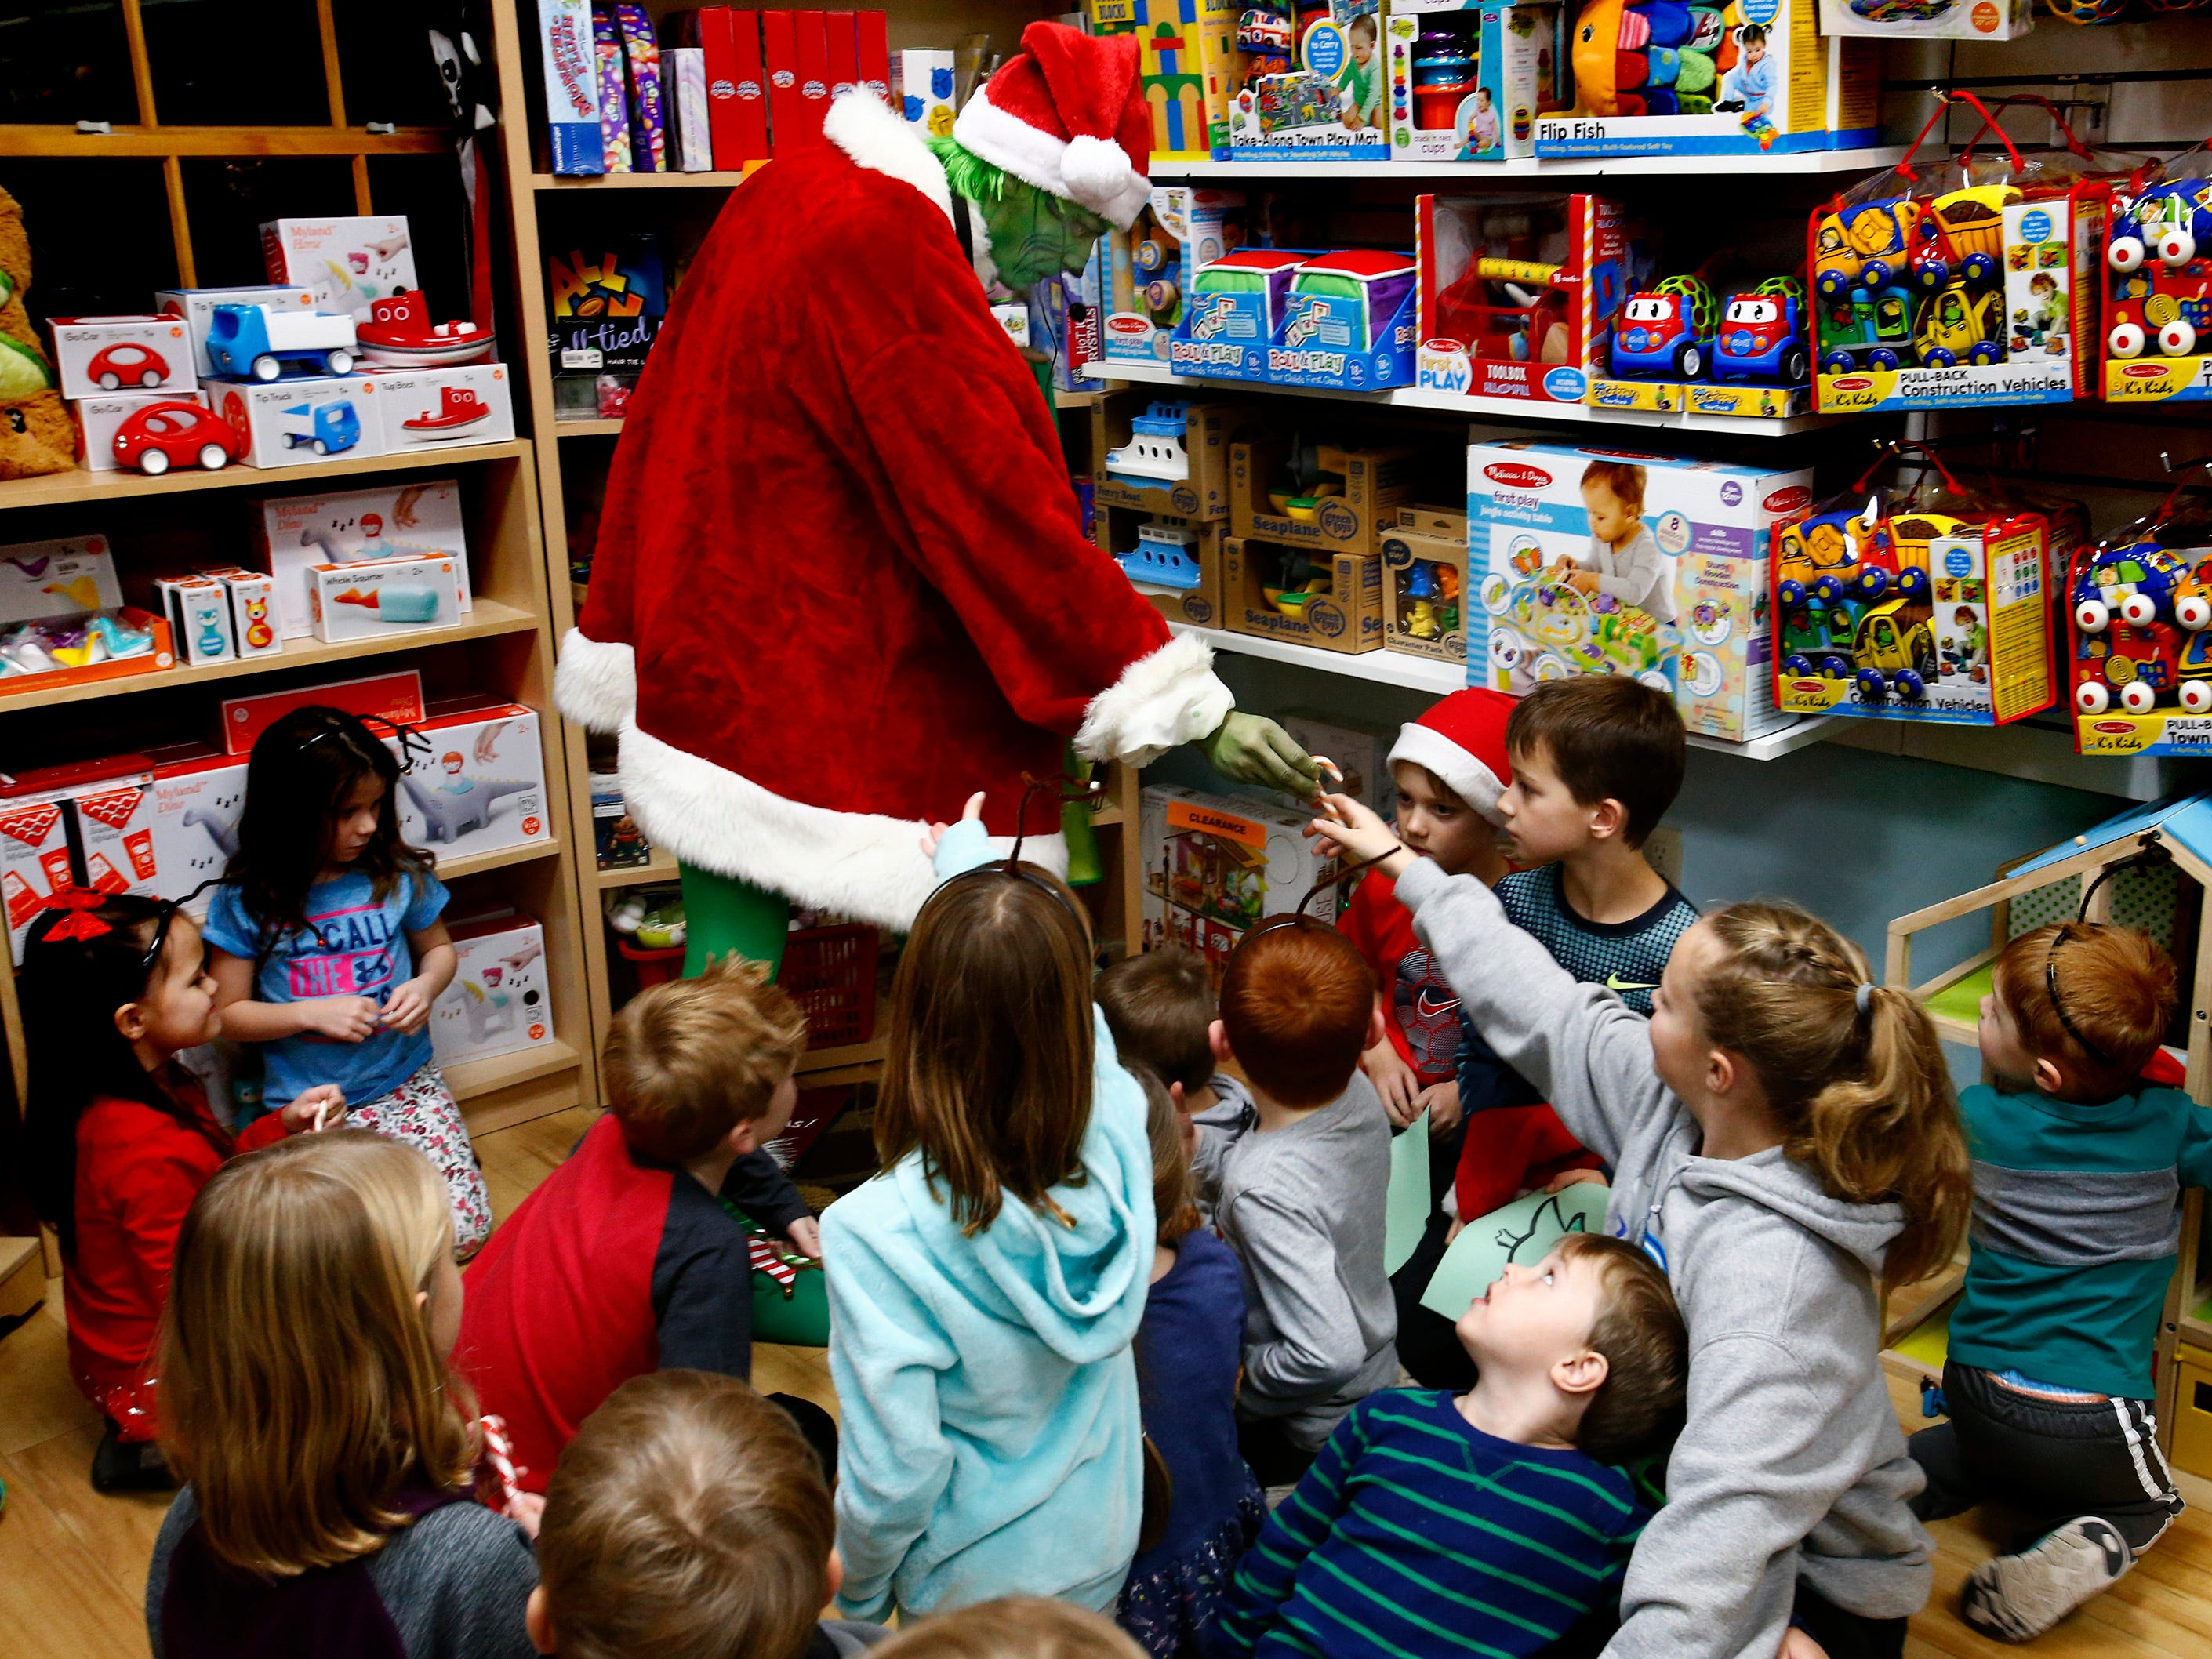 The Grinch, played by Rich Schoenholtz, hands out pickle, bacon and gravy-flavored candy canes before reading his favorite book to a packed store during Grinchmas in Pewaukee at Silly Willyz on Dec 6.